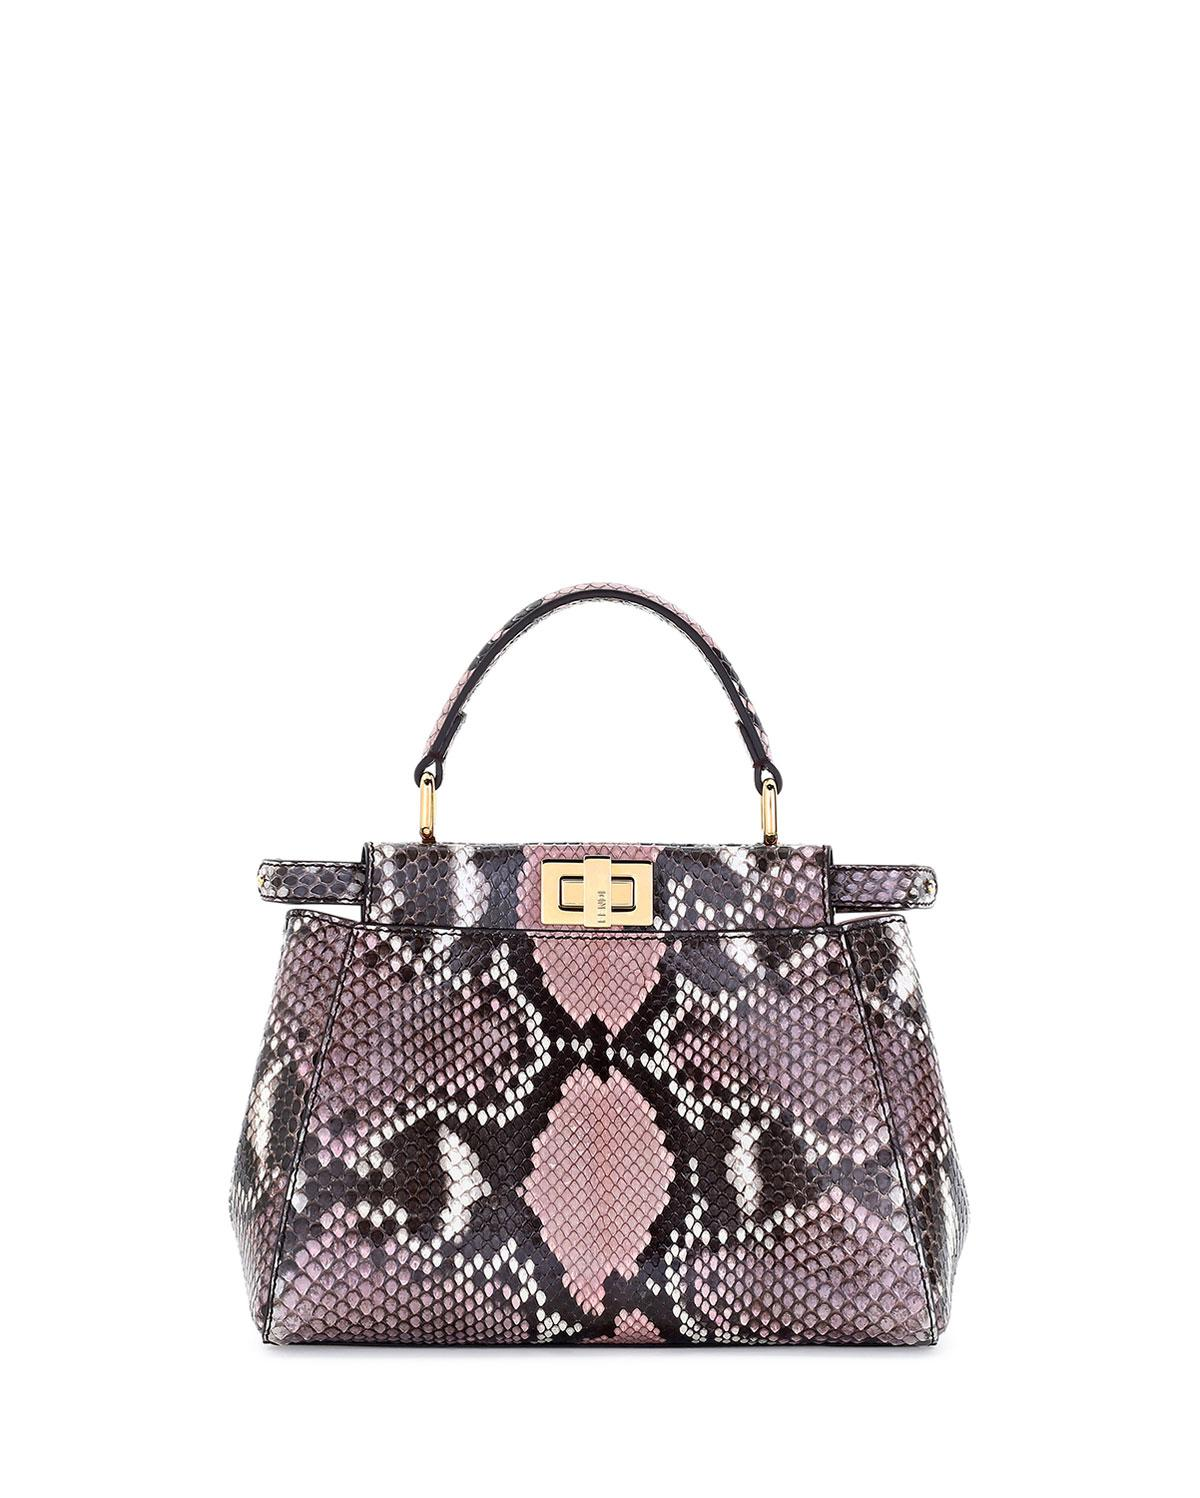 f7f5e2b444f2 Lyst - Fendi Peekaboo Mini Python Satchel Tote Bag in Pink